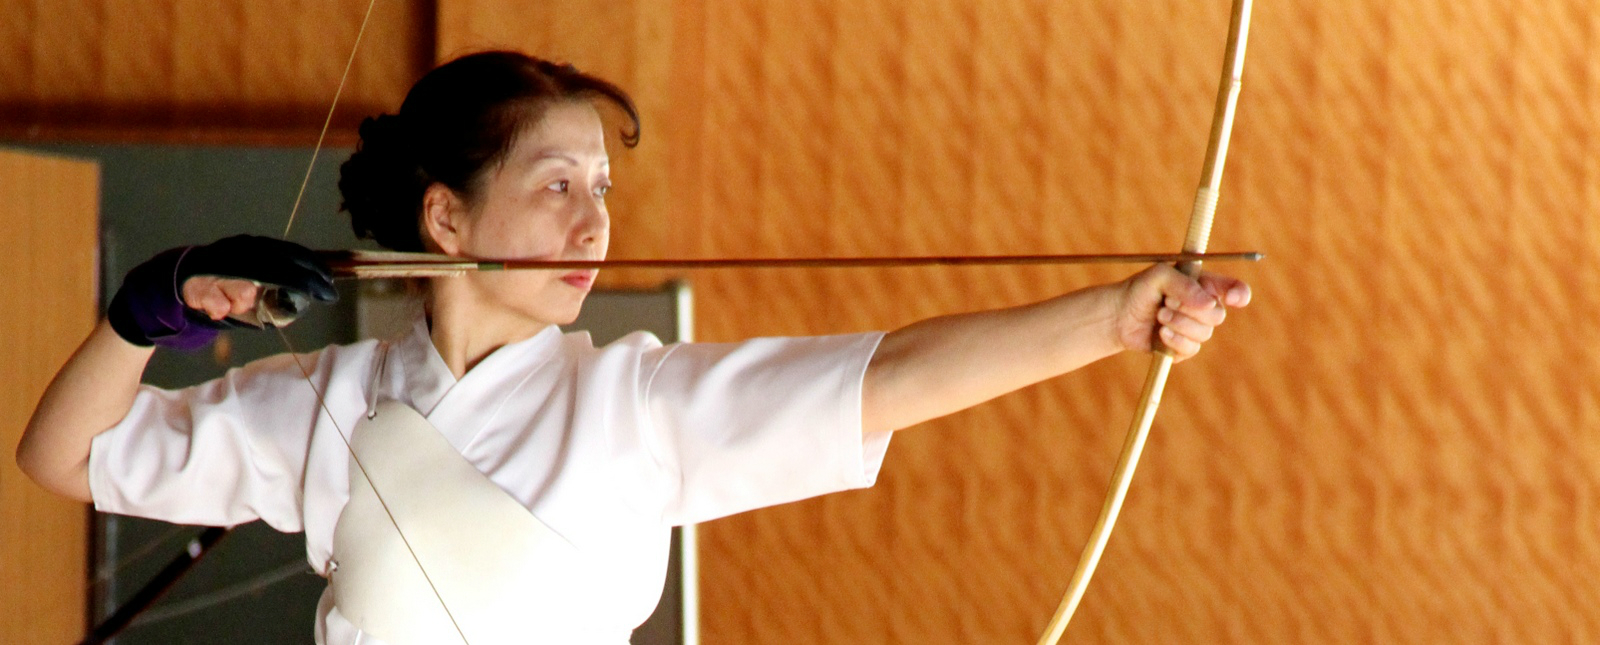 archer close up